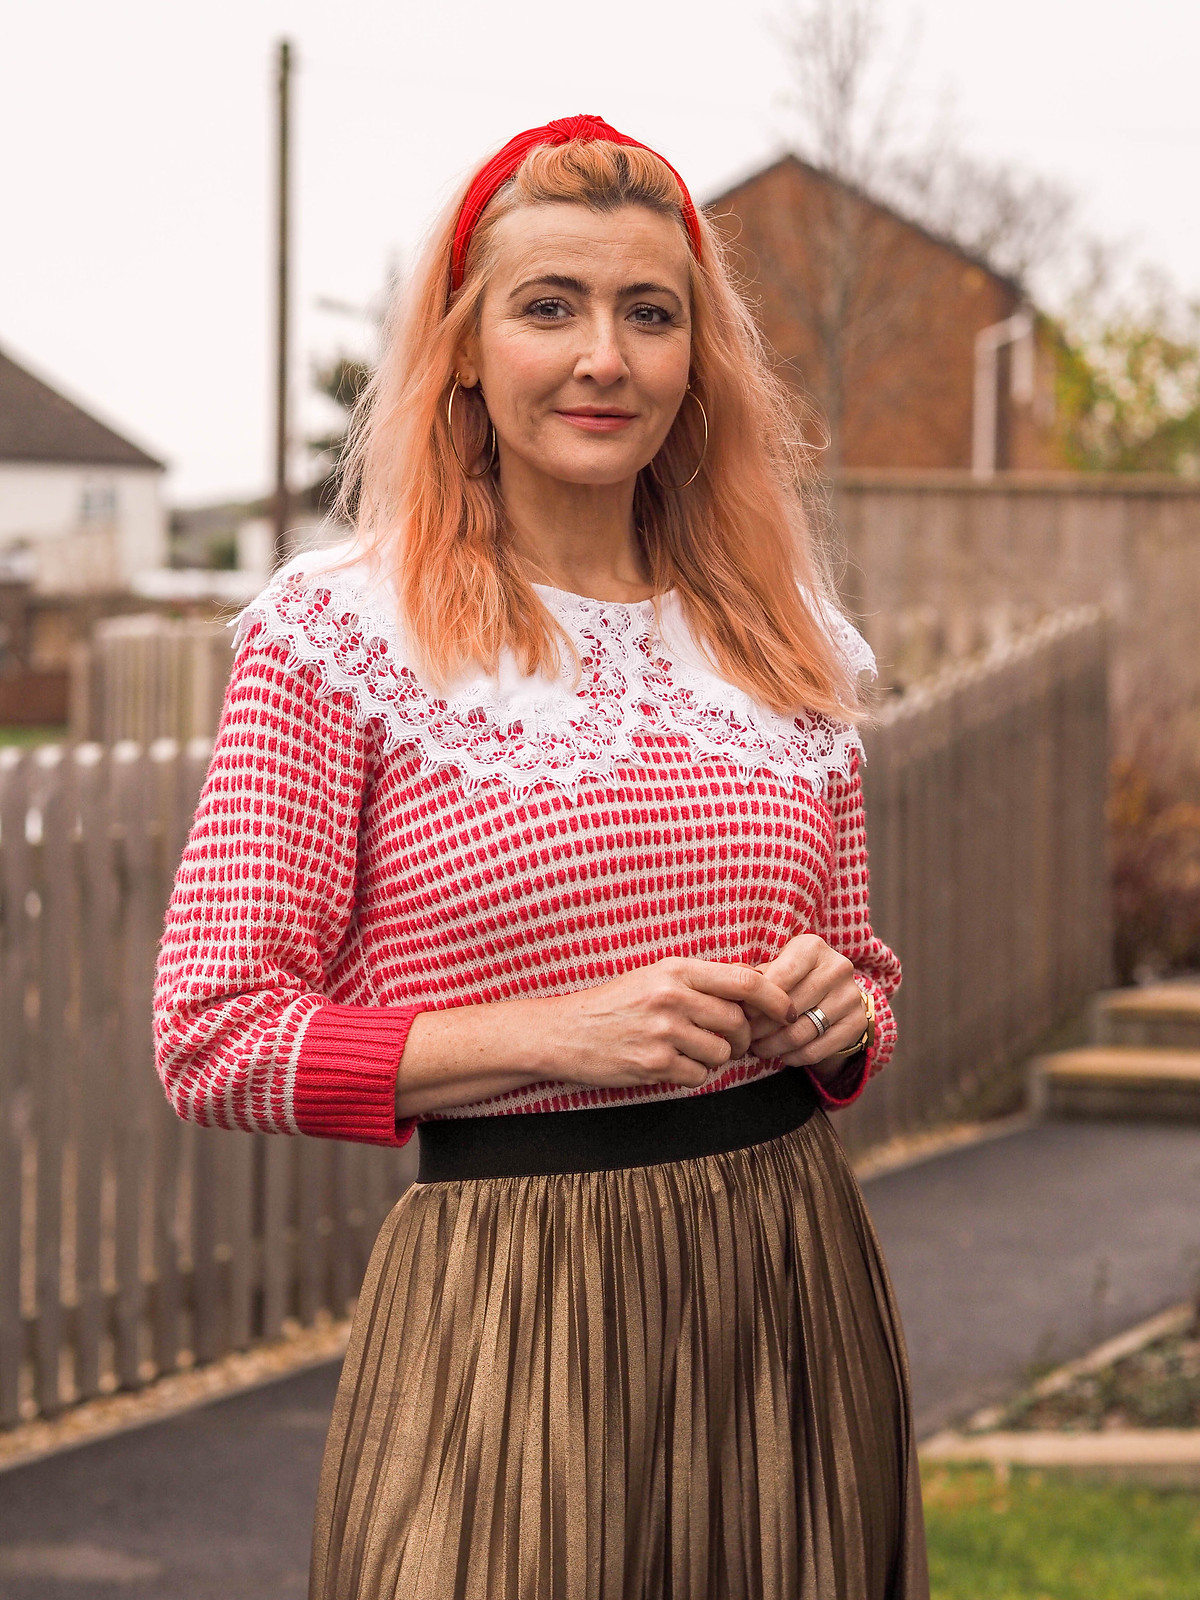 Christmas Day Outfit: Oversized white lace colour, white/red patterned sweater, gold pleated maxi skirt, red heels, red headband | Not Dressed As Lamb, Over 40 Fashion